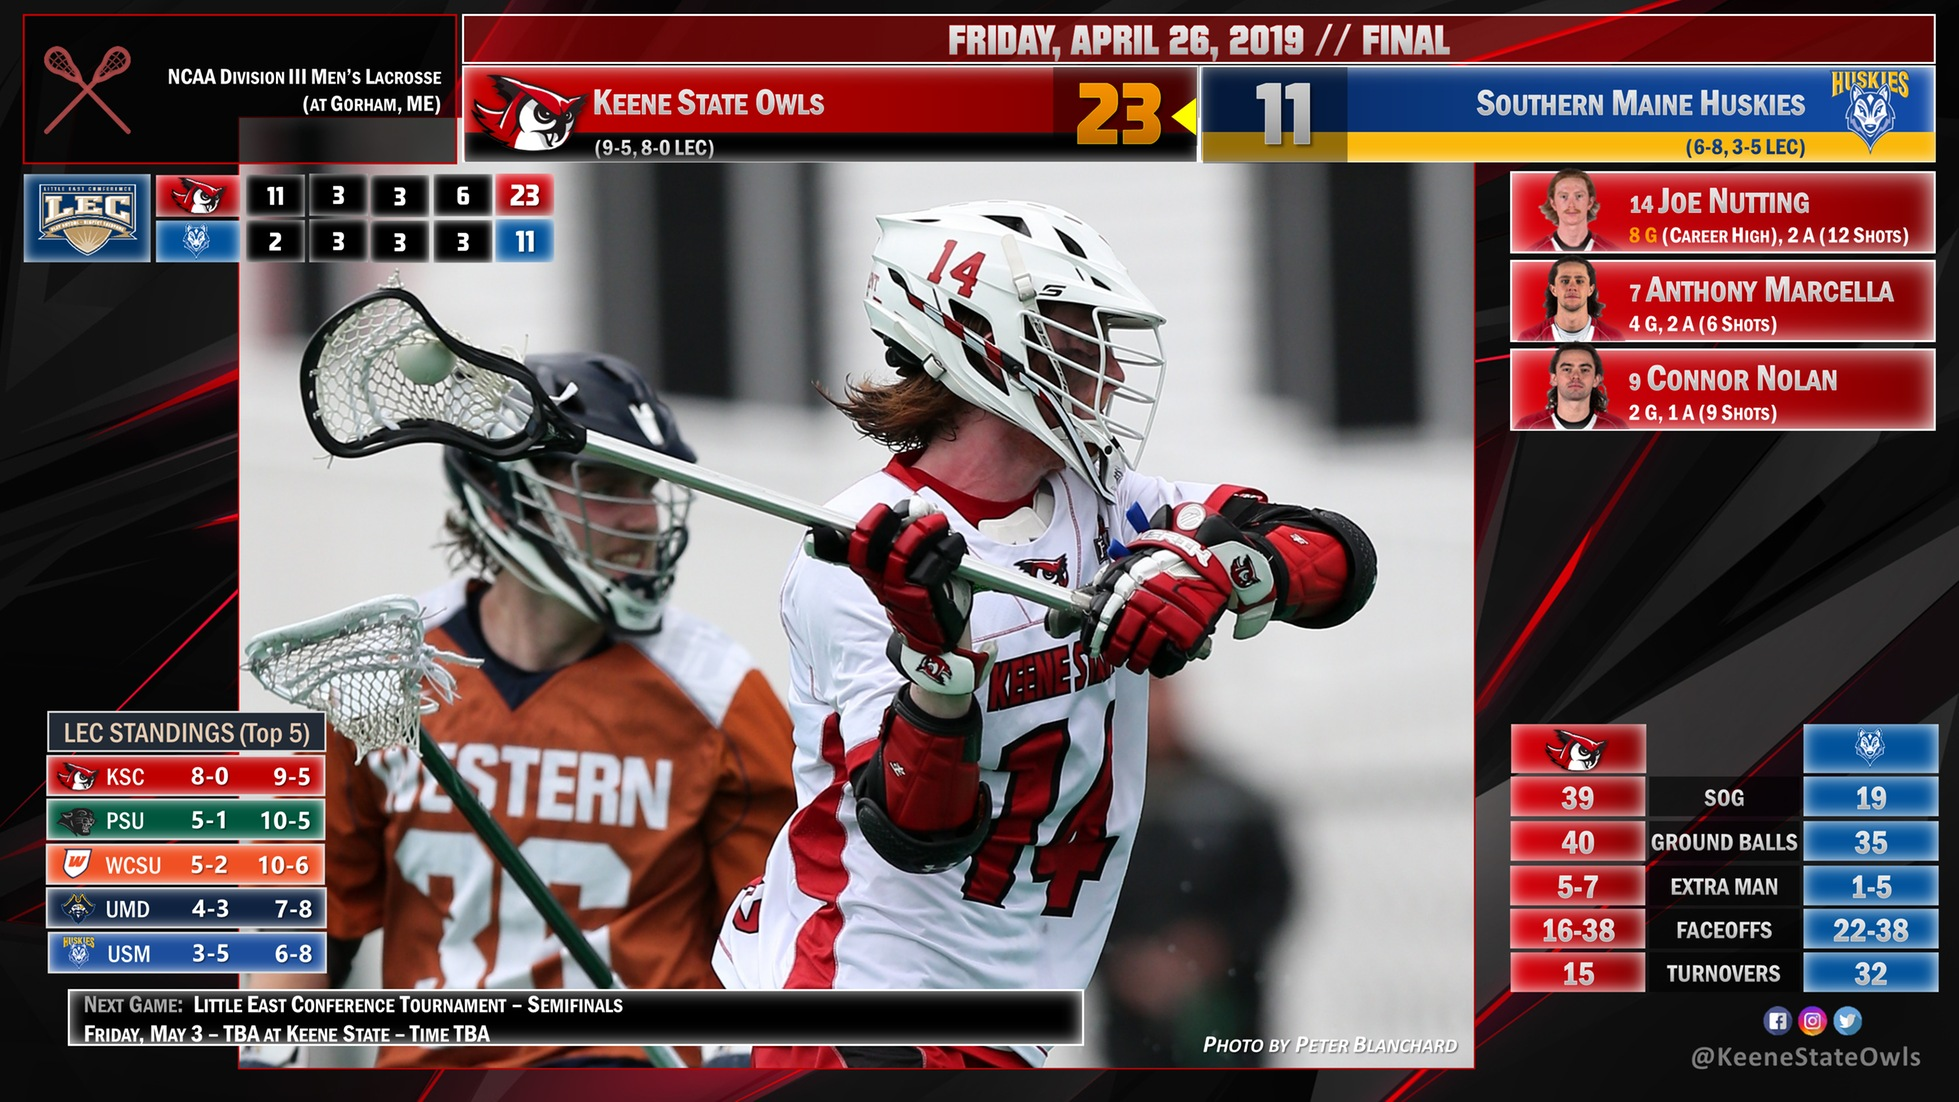 Owls Finish Off Perfect LEC Regular Season With 23-11 Win Over Southern Maine